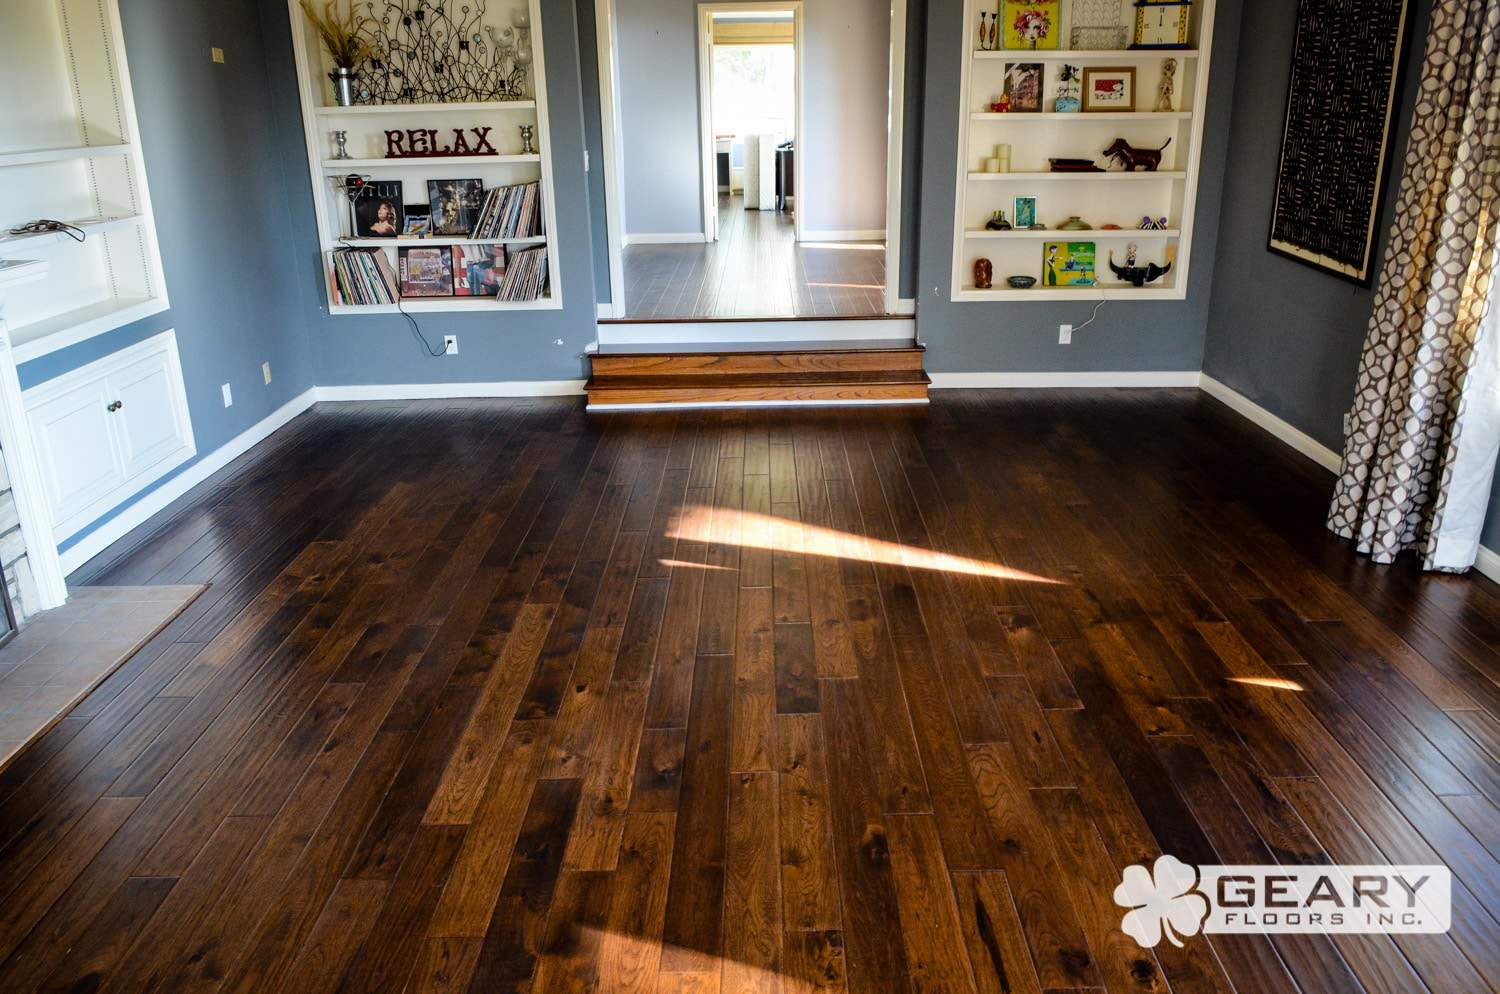 Geary Flooring Alpine Home Residential Flooring DSC 0410 - Alpine Home (Alpine, CA) - Hardwood Flooring San Diego